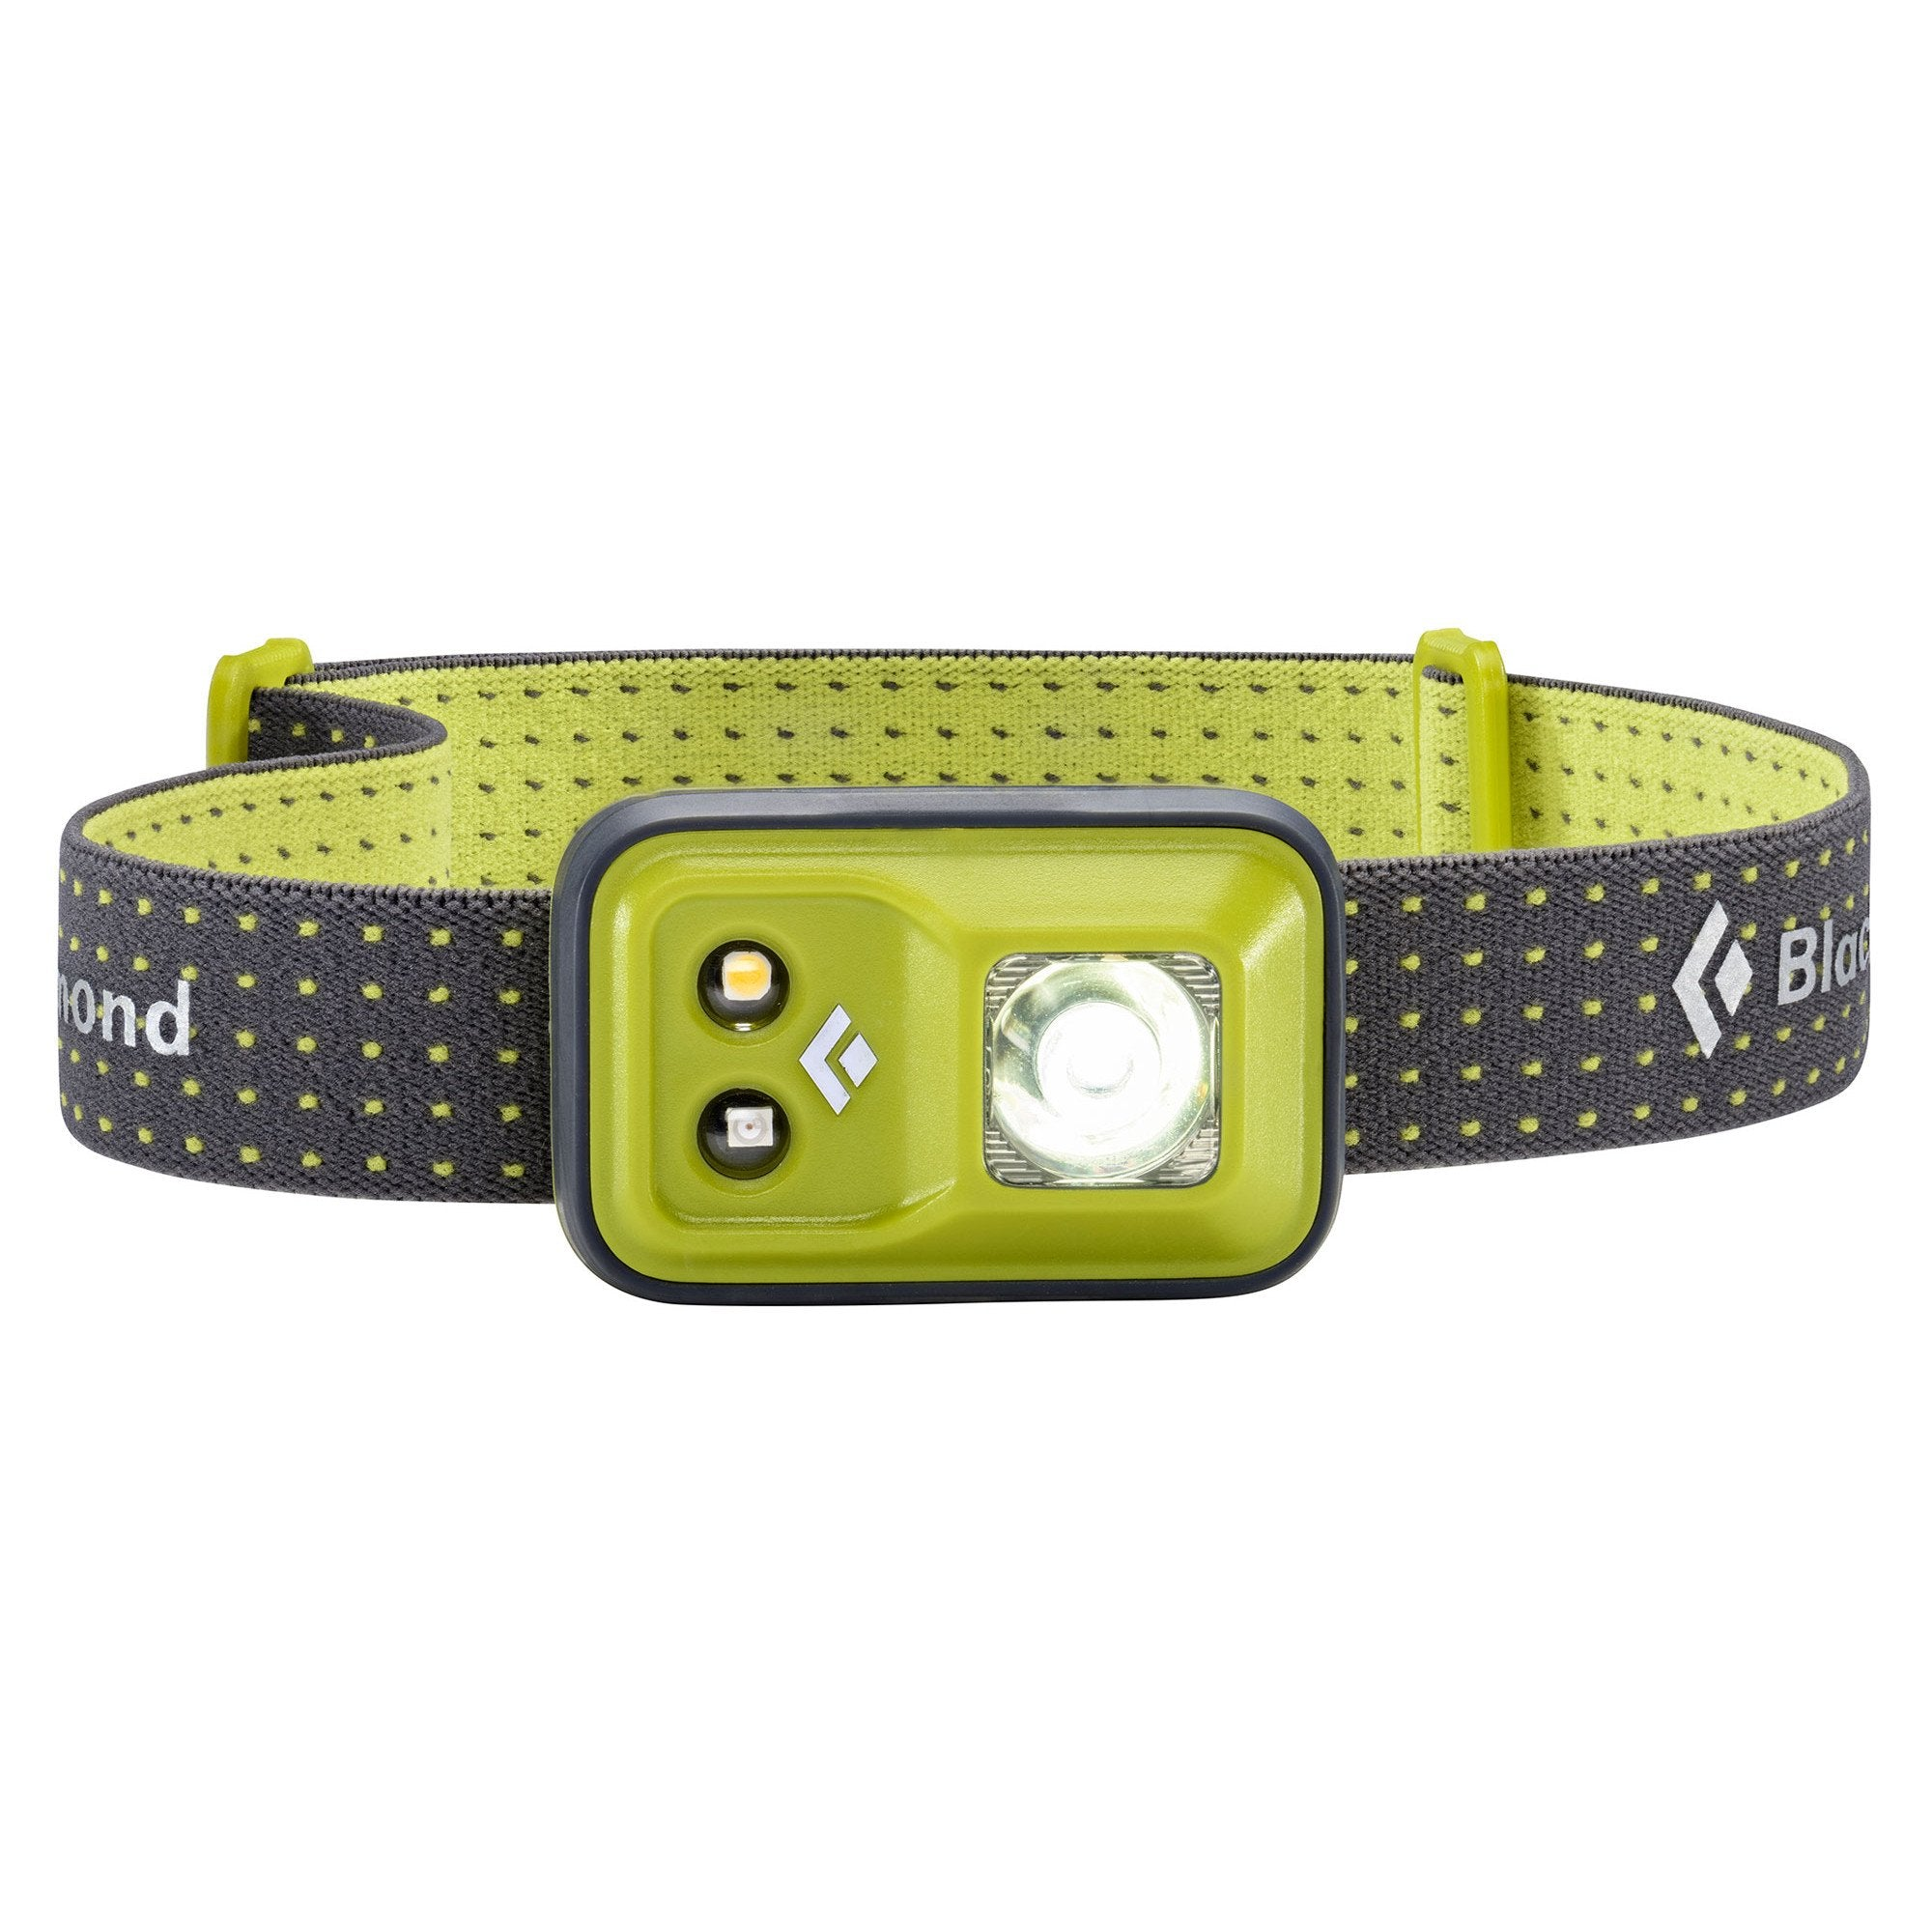 Black Diamond Cosmo headlamp, in green and grey colours